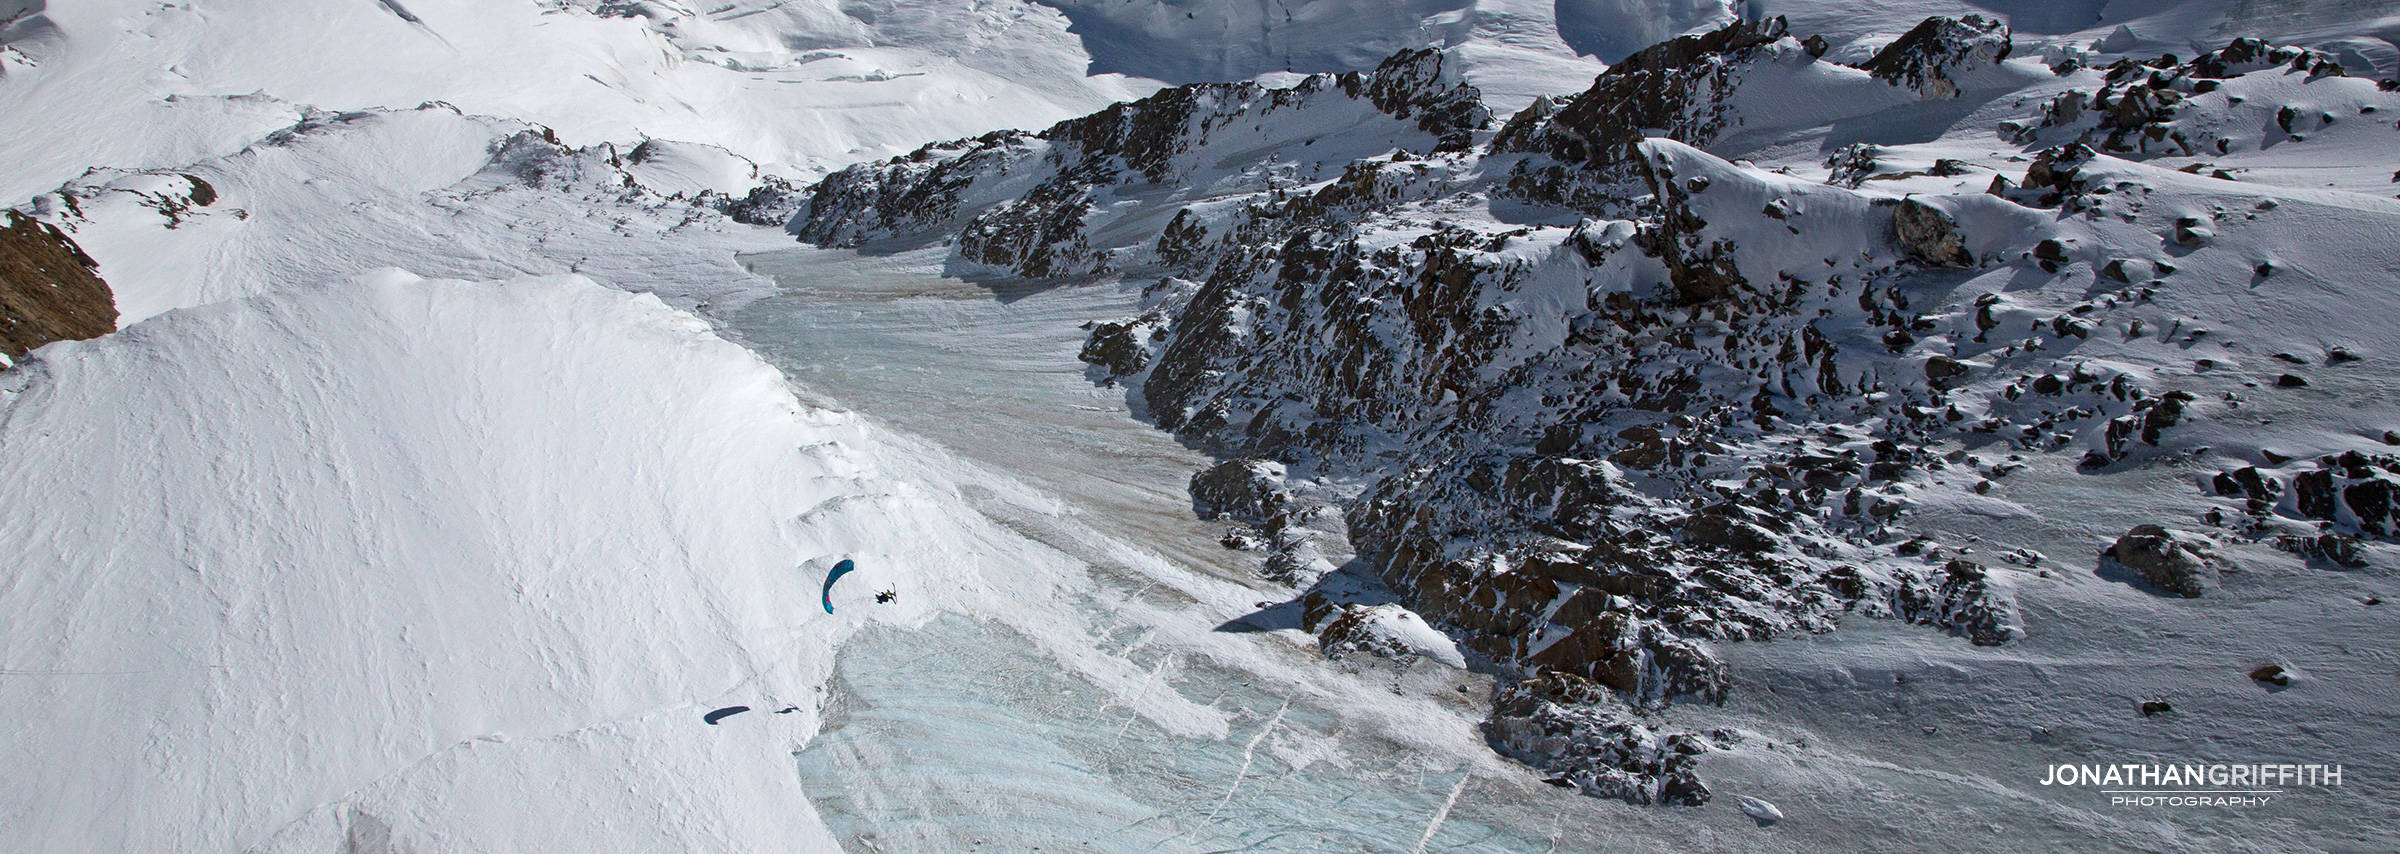 Aaron lost in the vast expanse of the West Face of the Monte Rosa